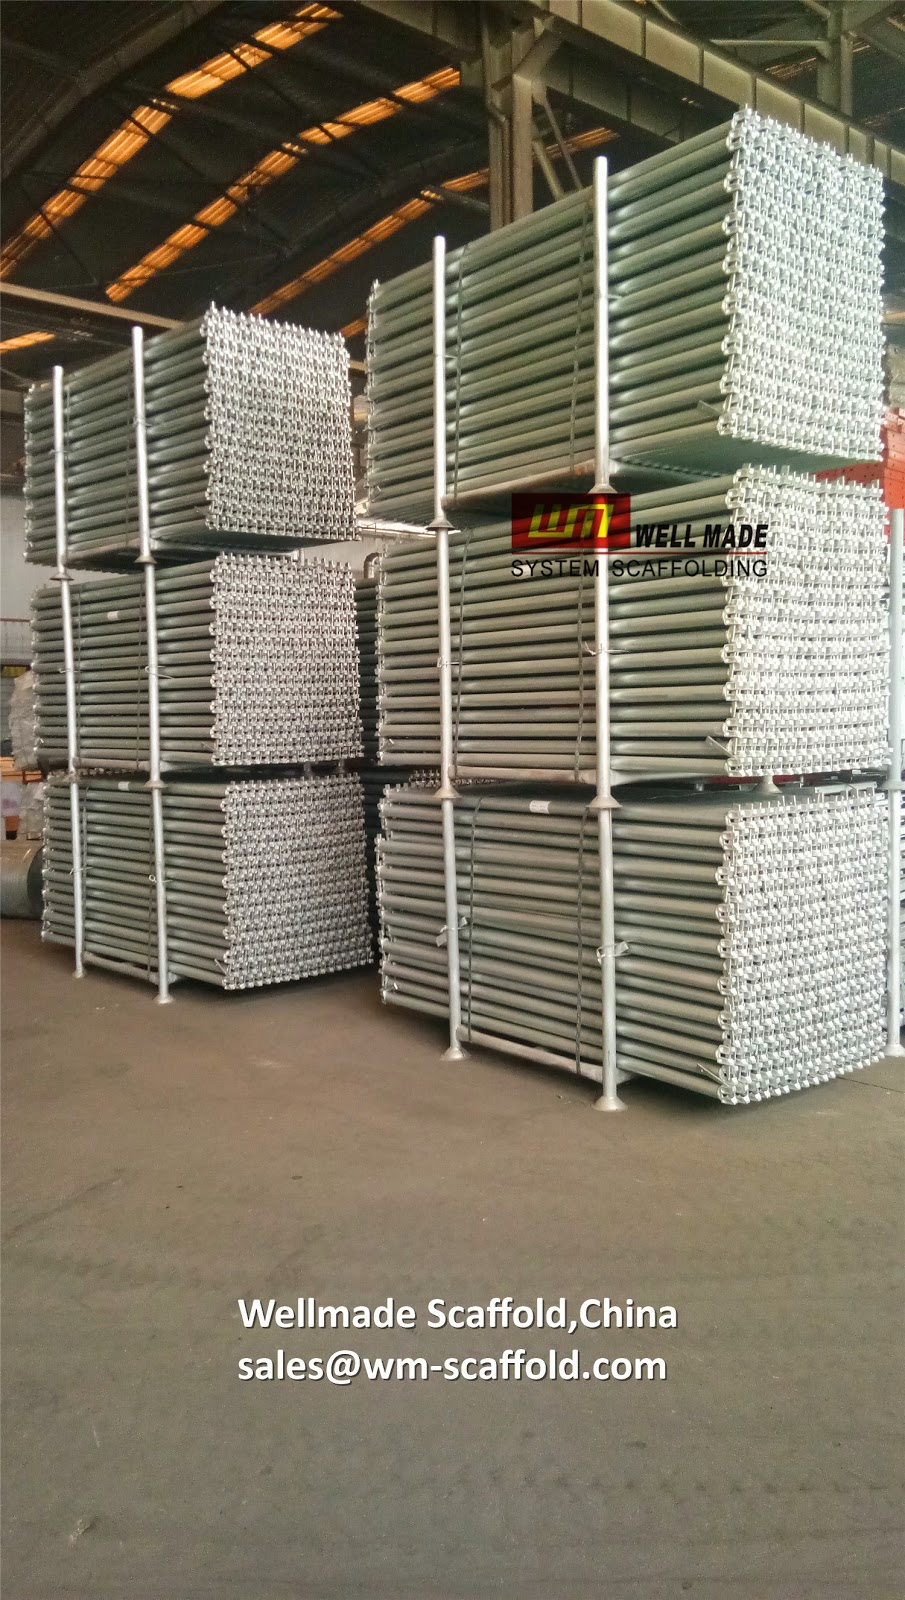 Ringlock Scaffolding Ledgers to Singapore Construction 2 07m